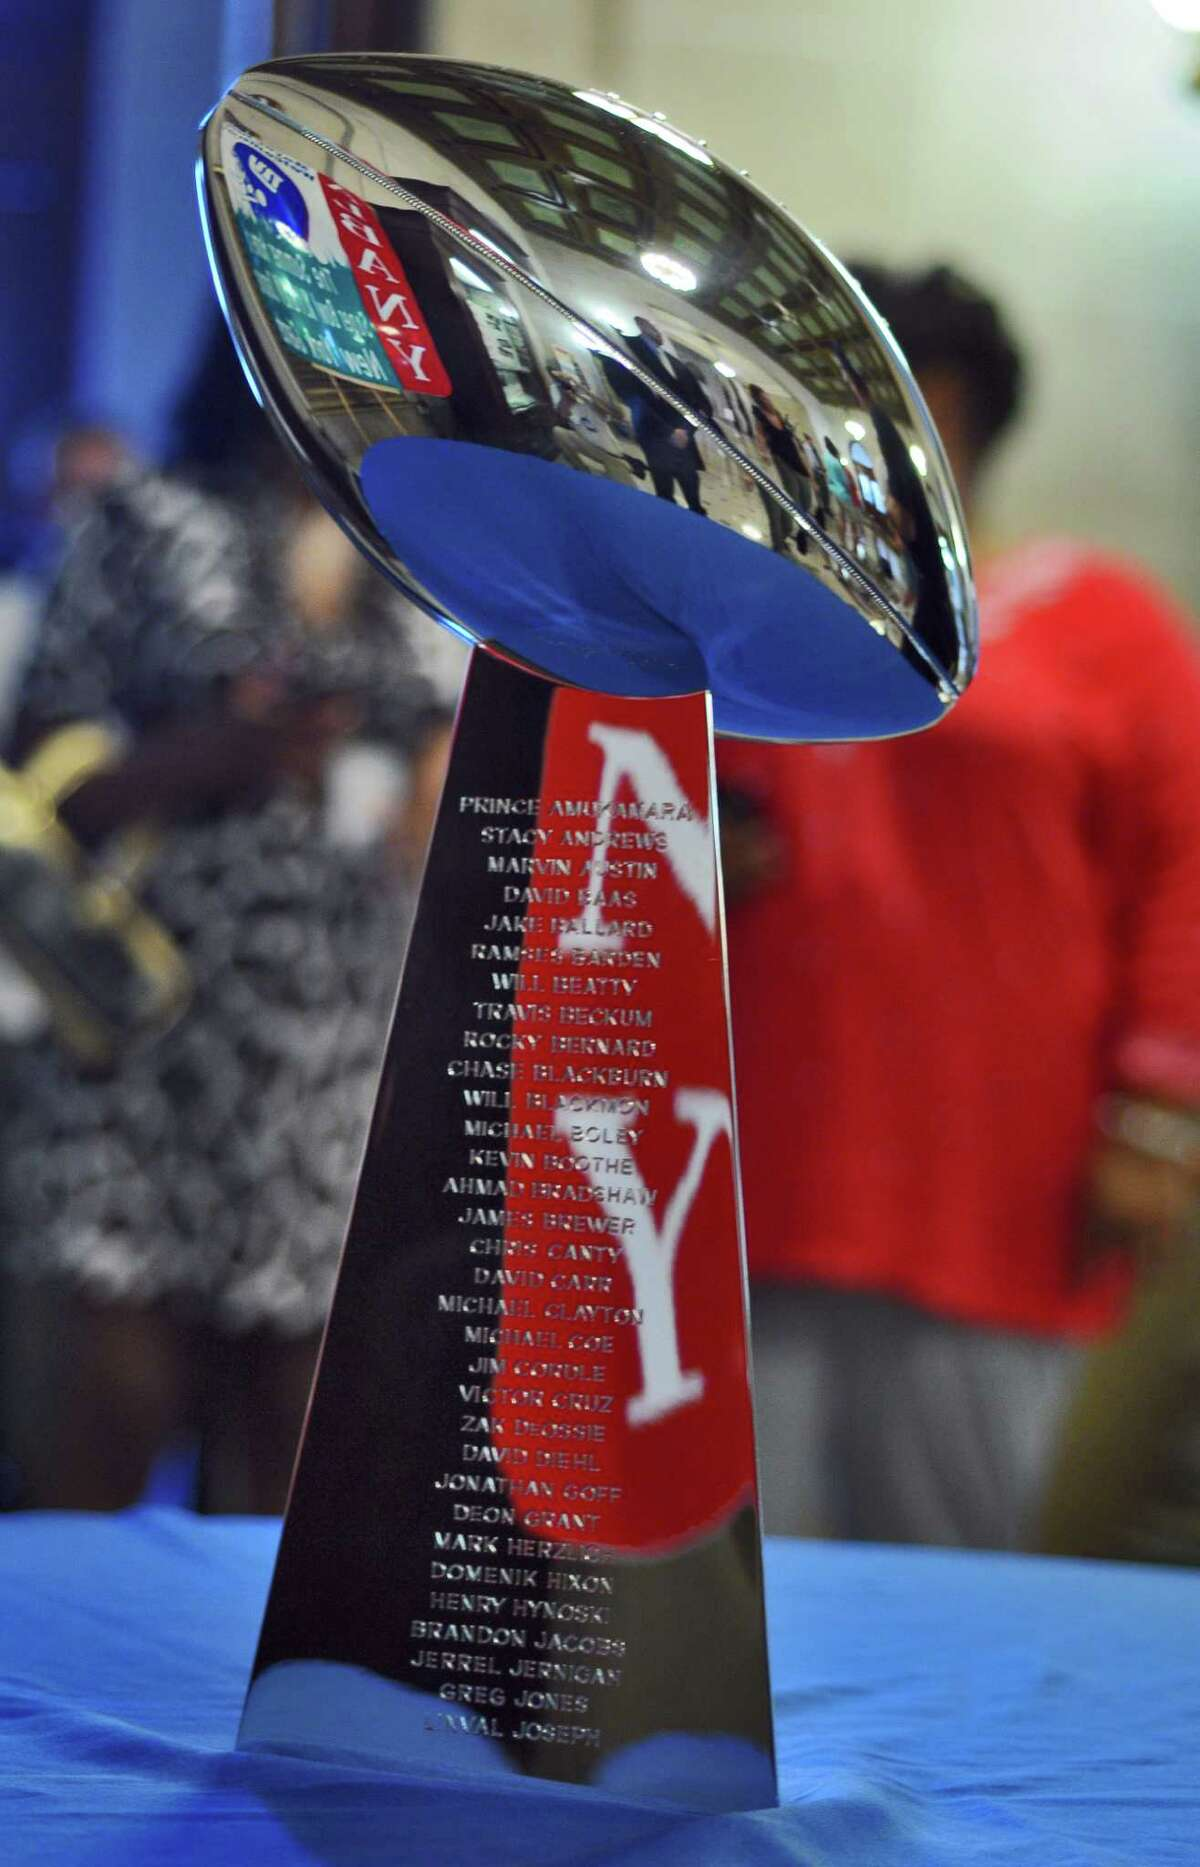 Visitors to the rotunda of City Hall were able to see the NFL's Vince Lombardi Trophy that the New York Giants received after winning last season's Super Bowl, on Thursday Aug. 2, 2012 in Albany, NY. (Philip Kamrass / Times Union)